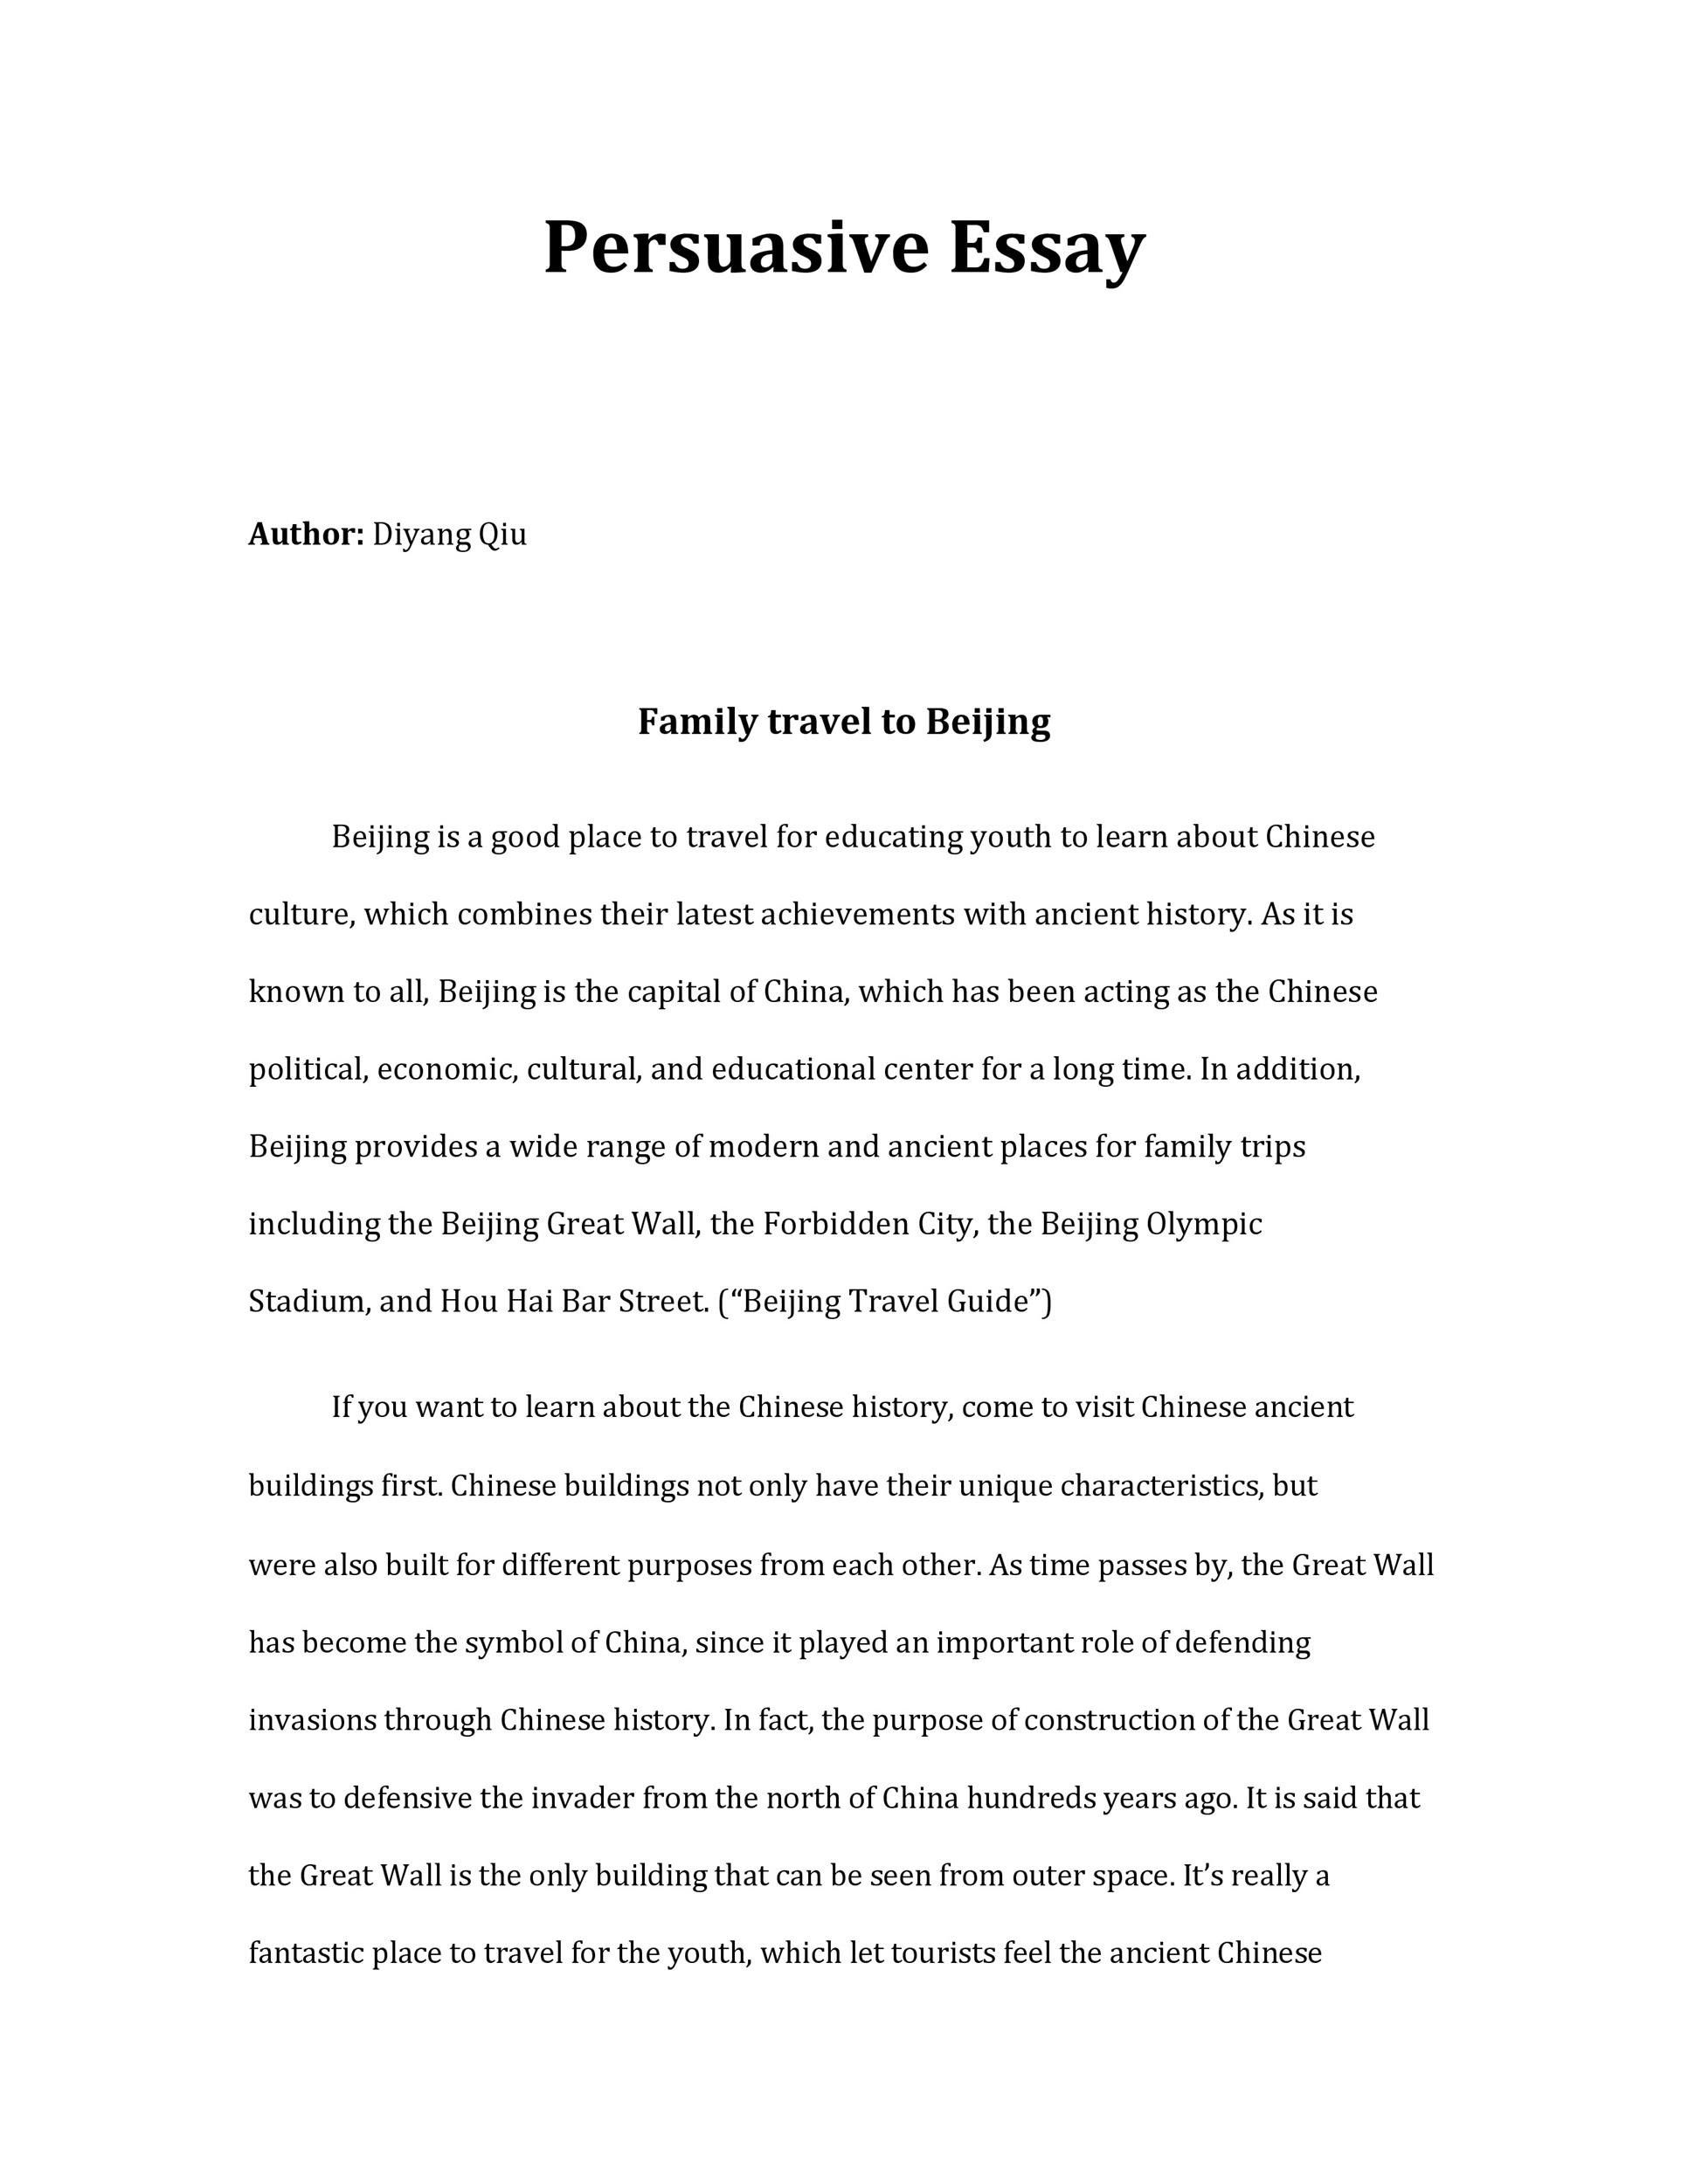 Persuasive psychology essay topics